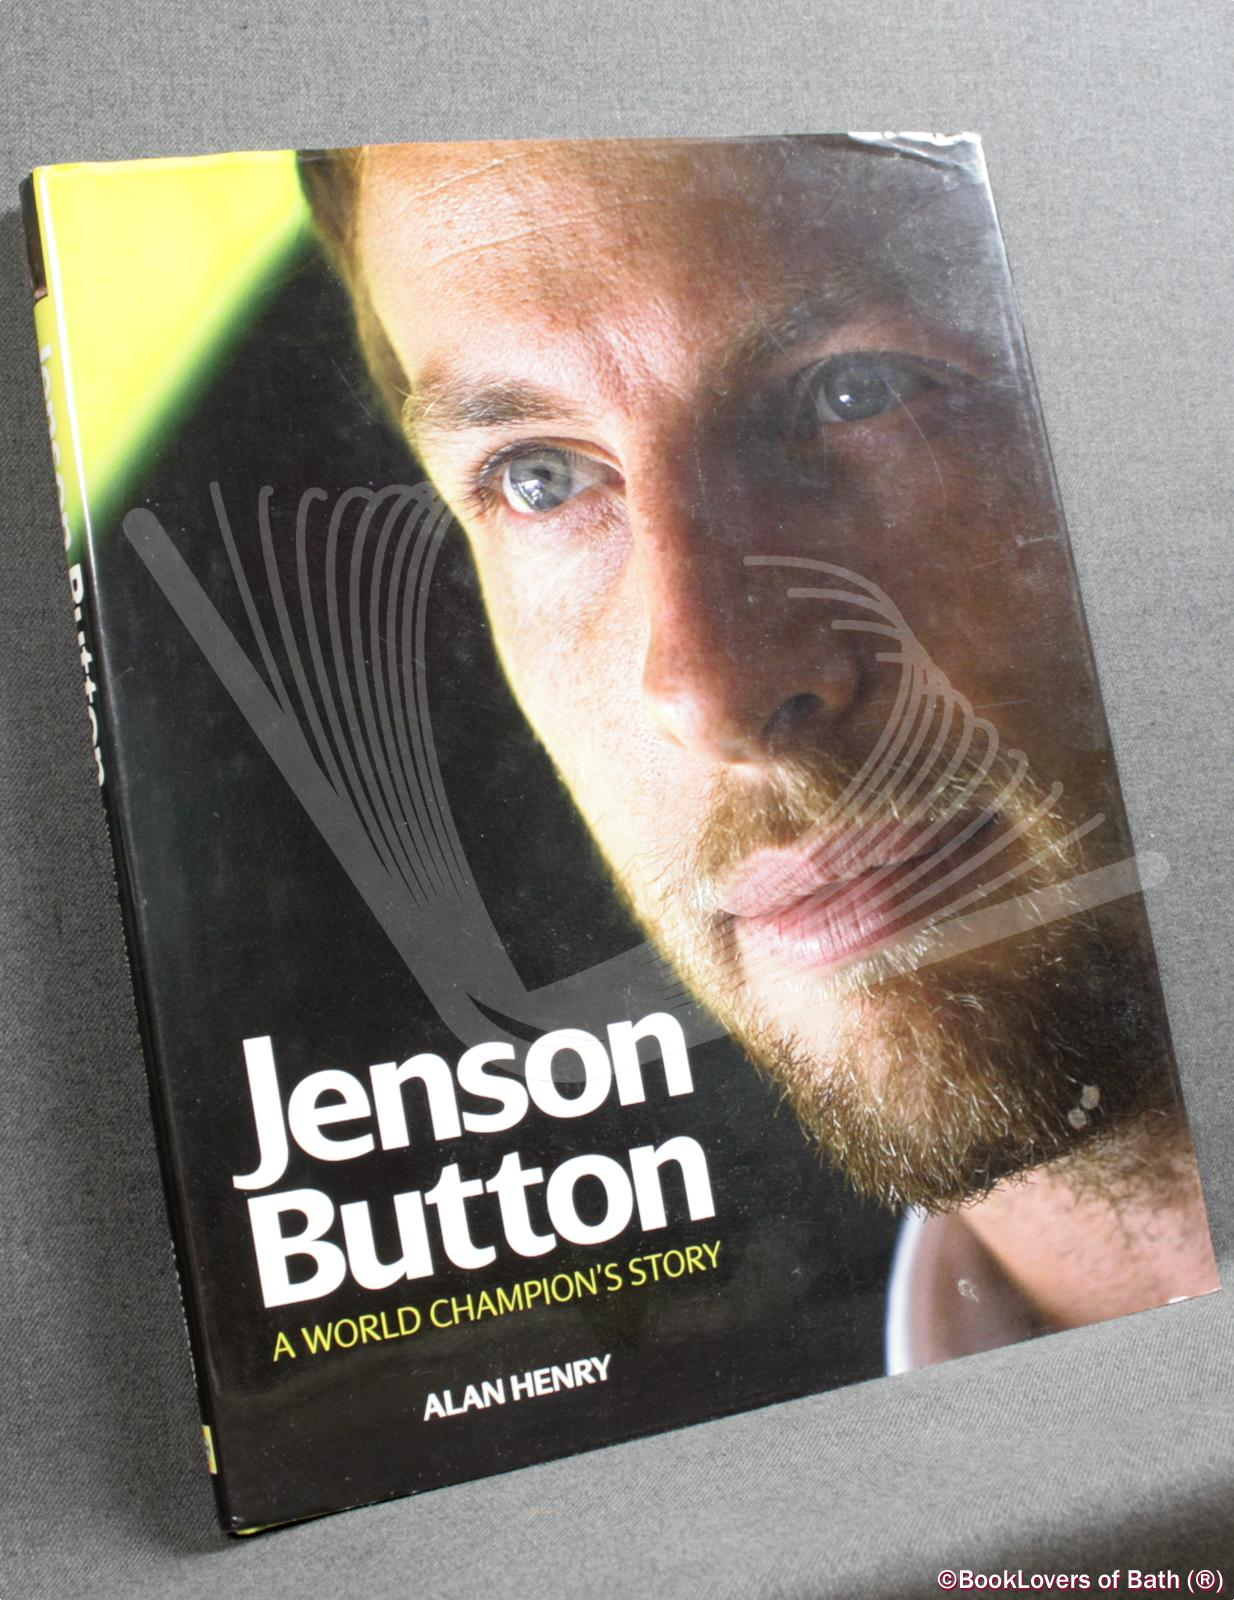 Jenson Button: A World Champion's Story - Alan Henry